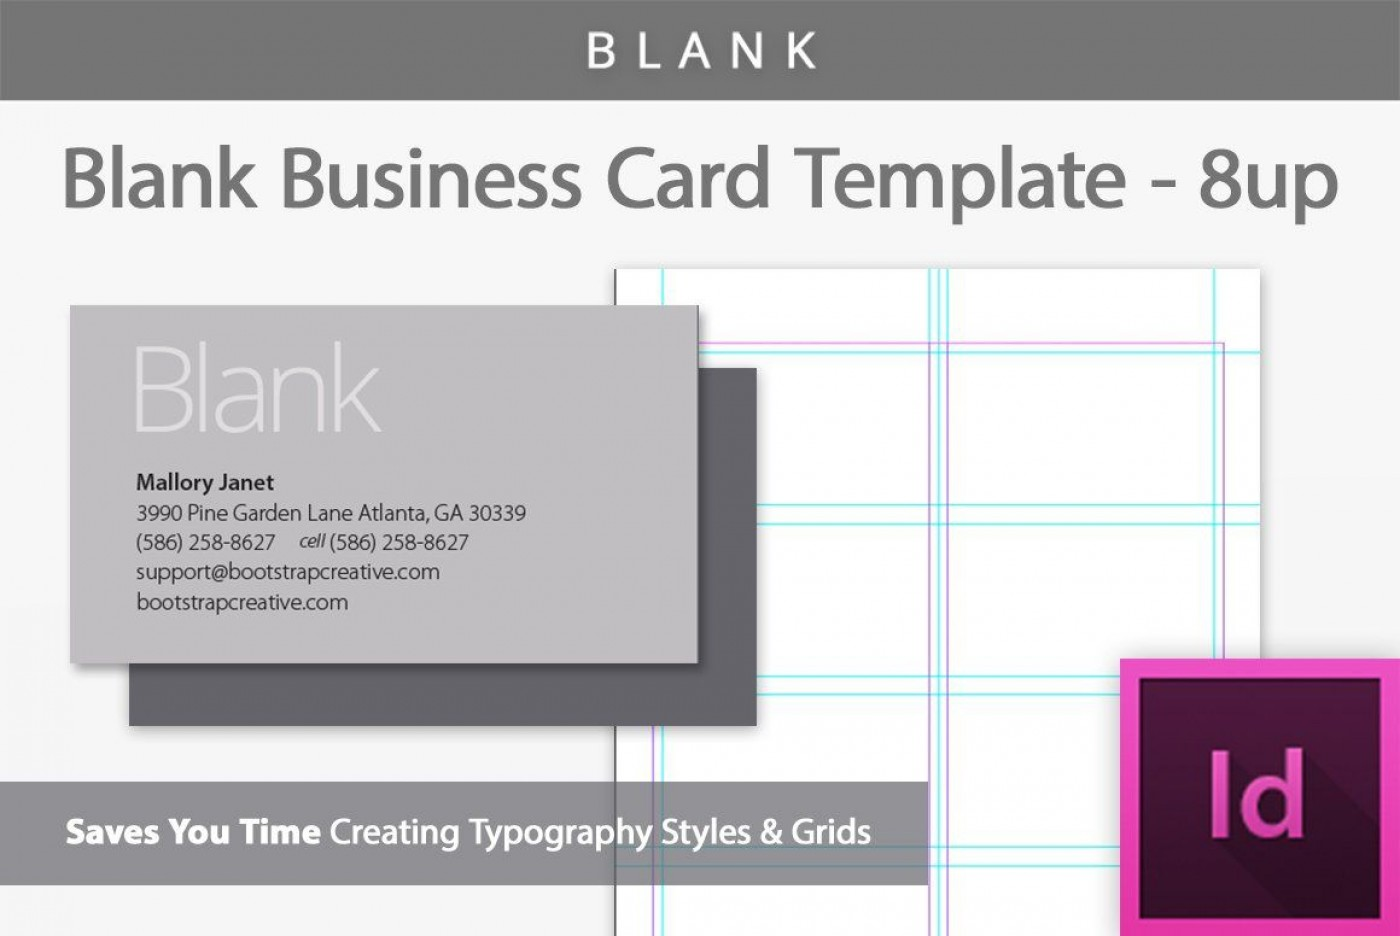 006 Exceptional Blank Busines Card Template Photoshop Photo  Free Download Psd1400